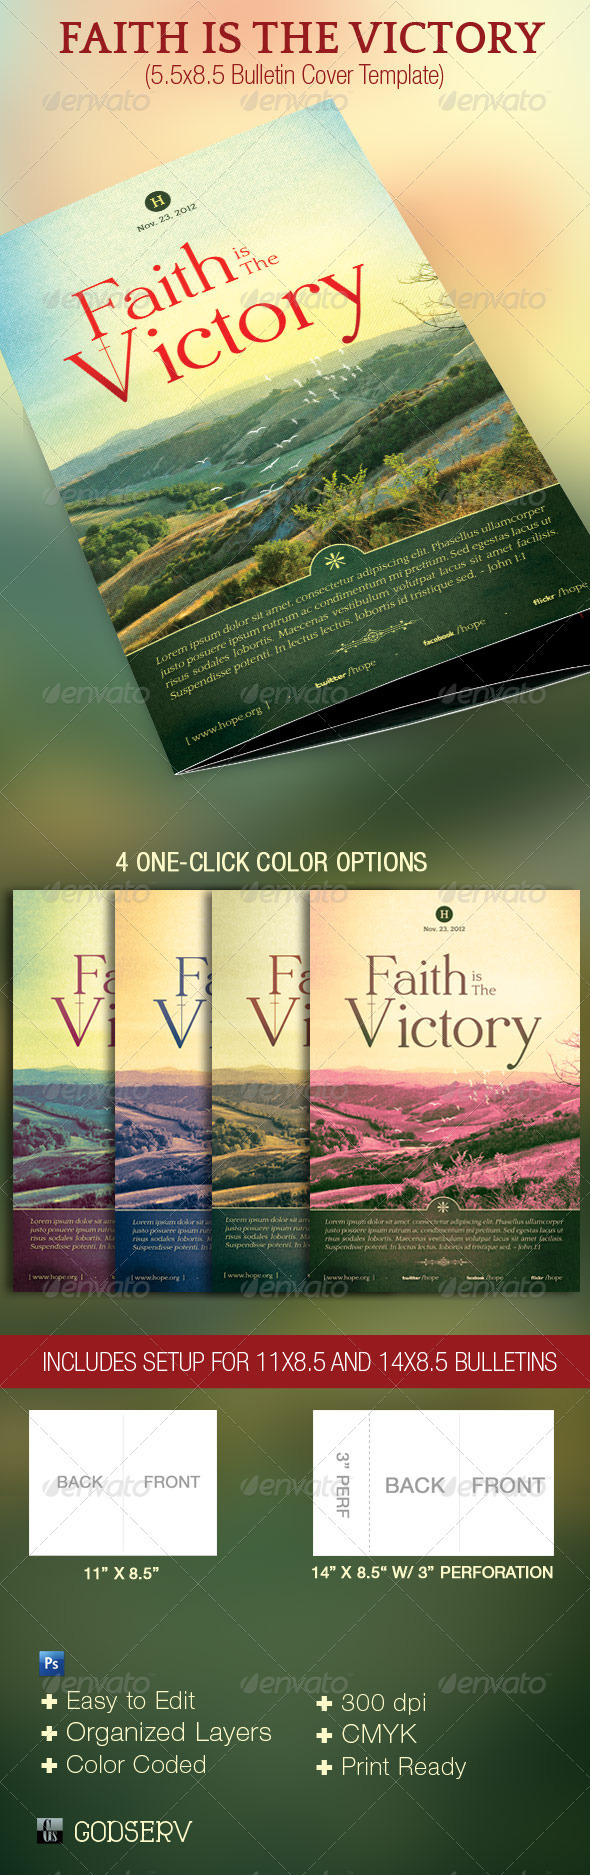 Faith Is The Victory Bulletin Cover Template - Miscellaneous Print Templates